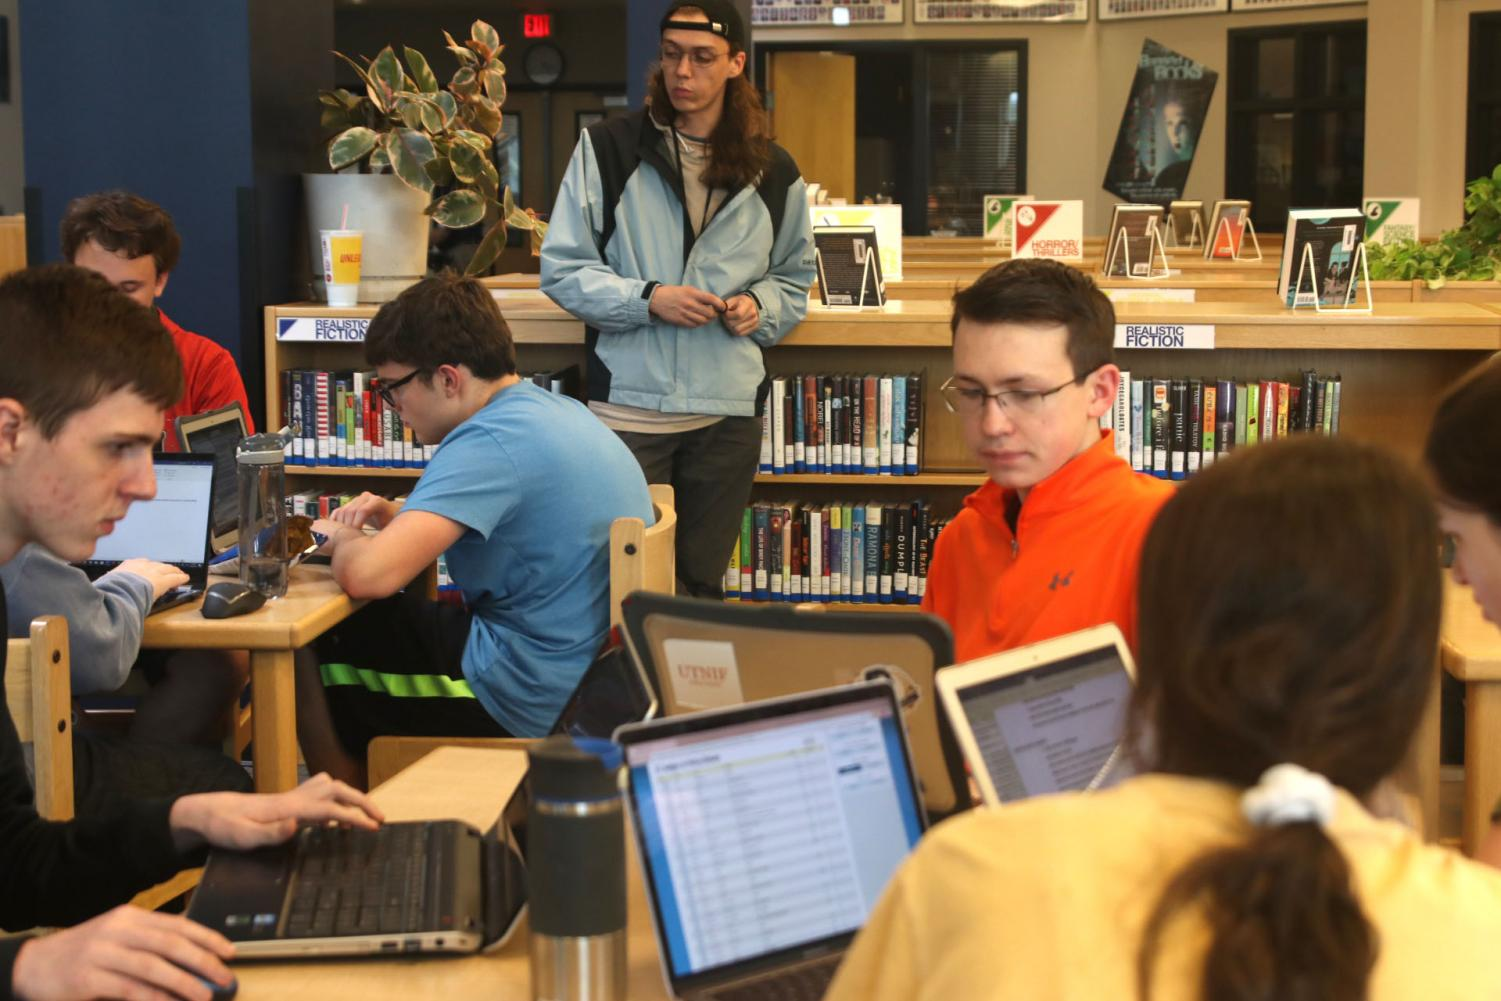 Debate gets ready for their trip to Oklahoma City, Oklahoma by gathering in the library to share information and strategies.